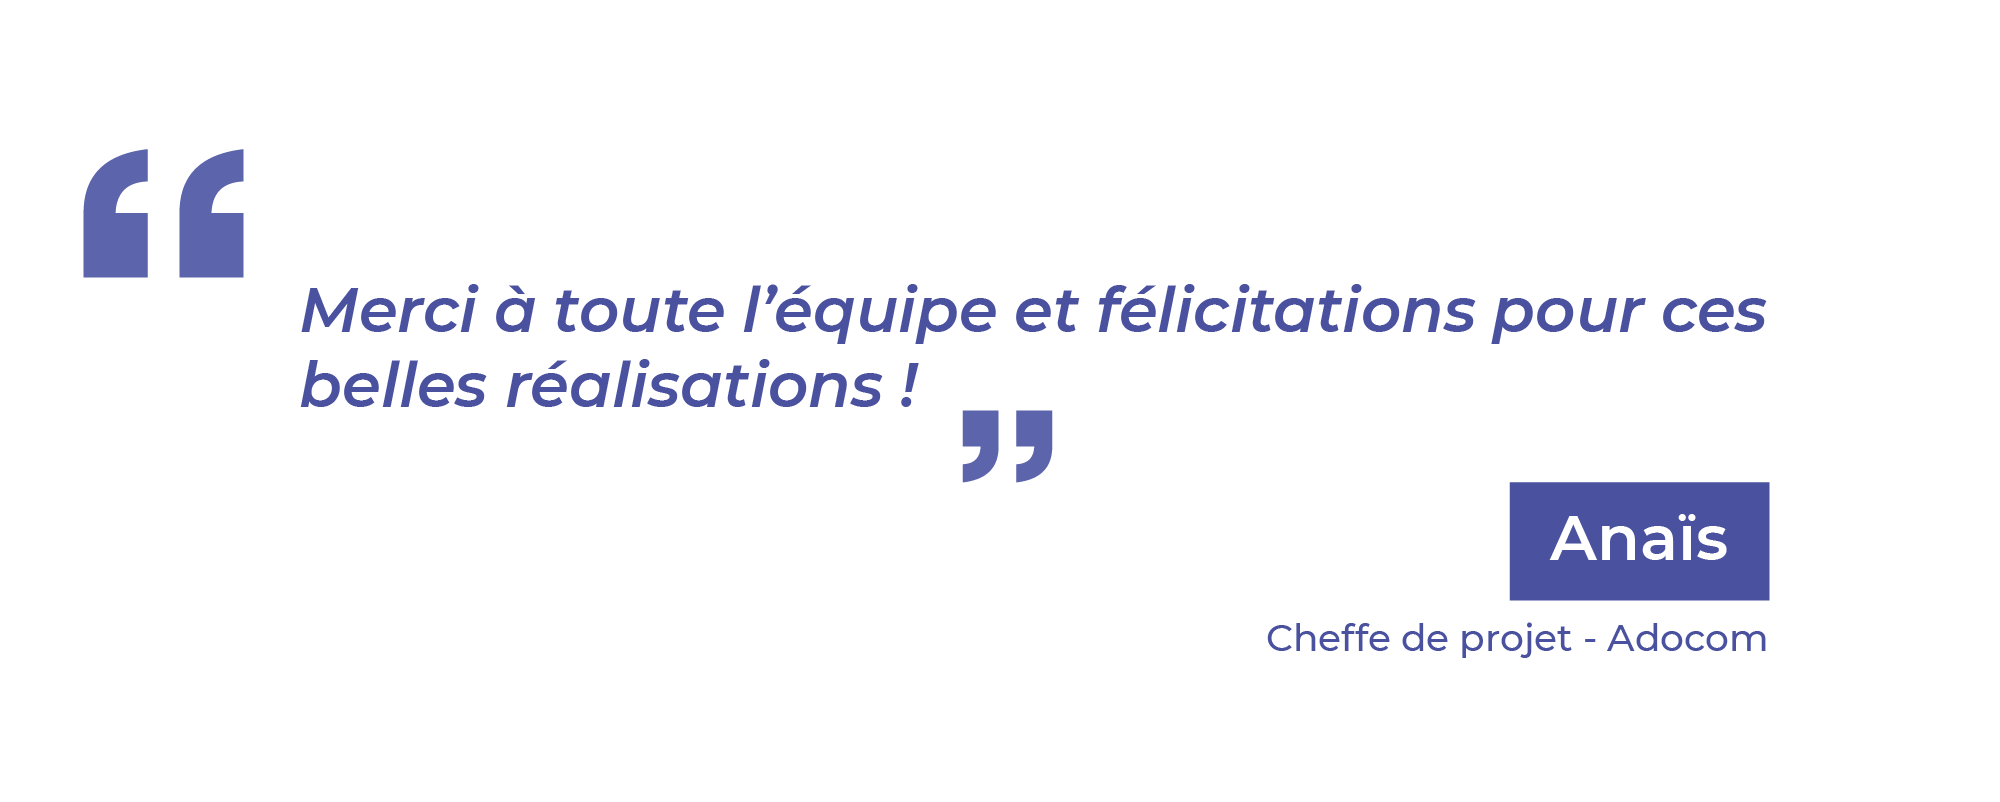 Citation_Anaïs